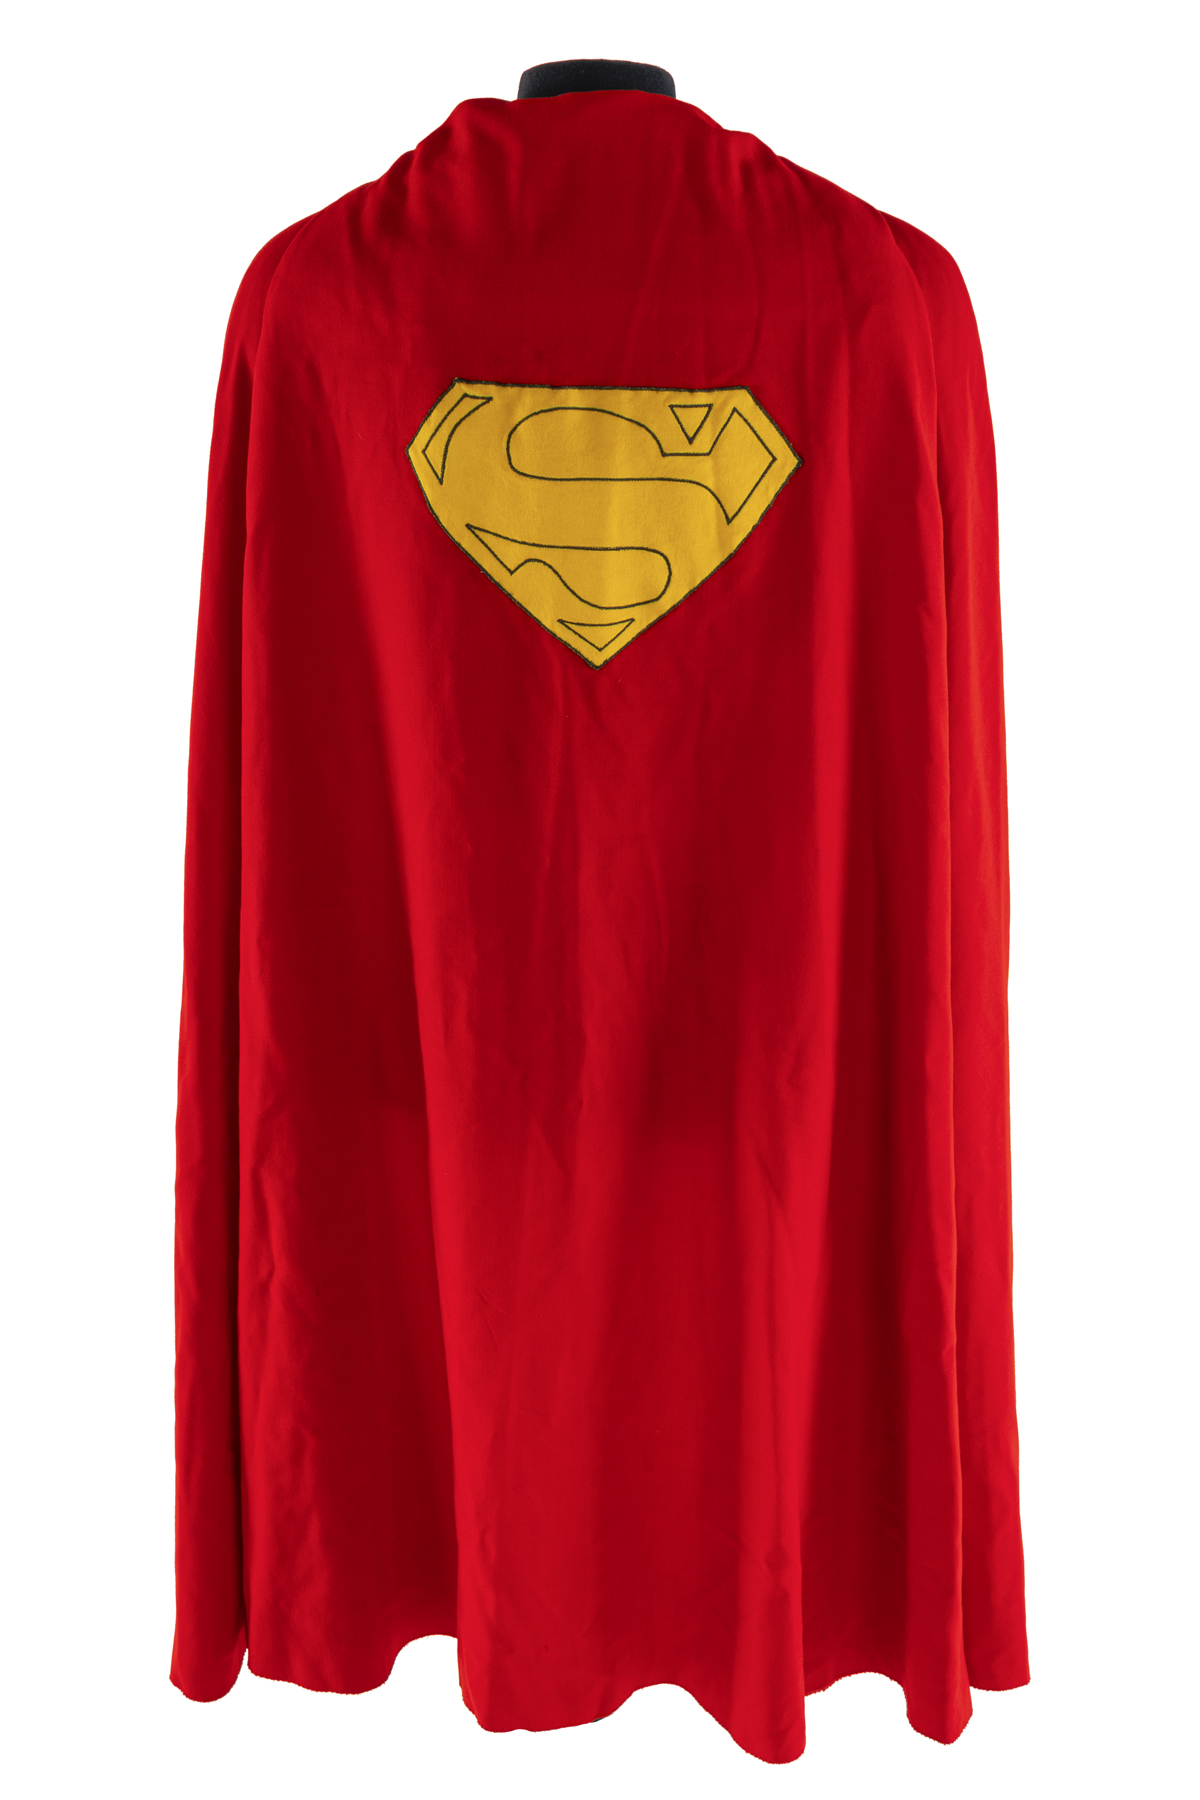 Superman's cape